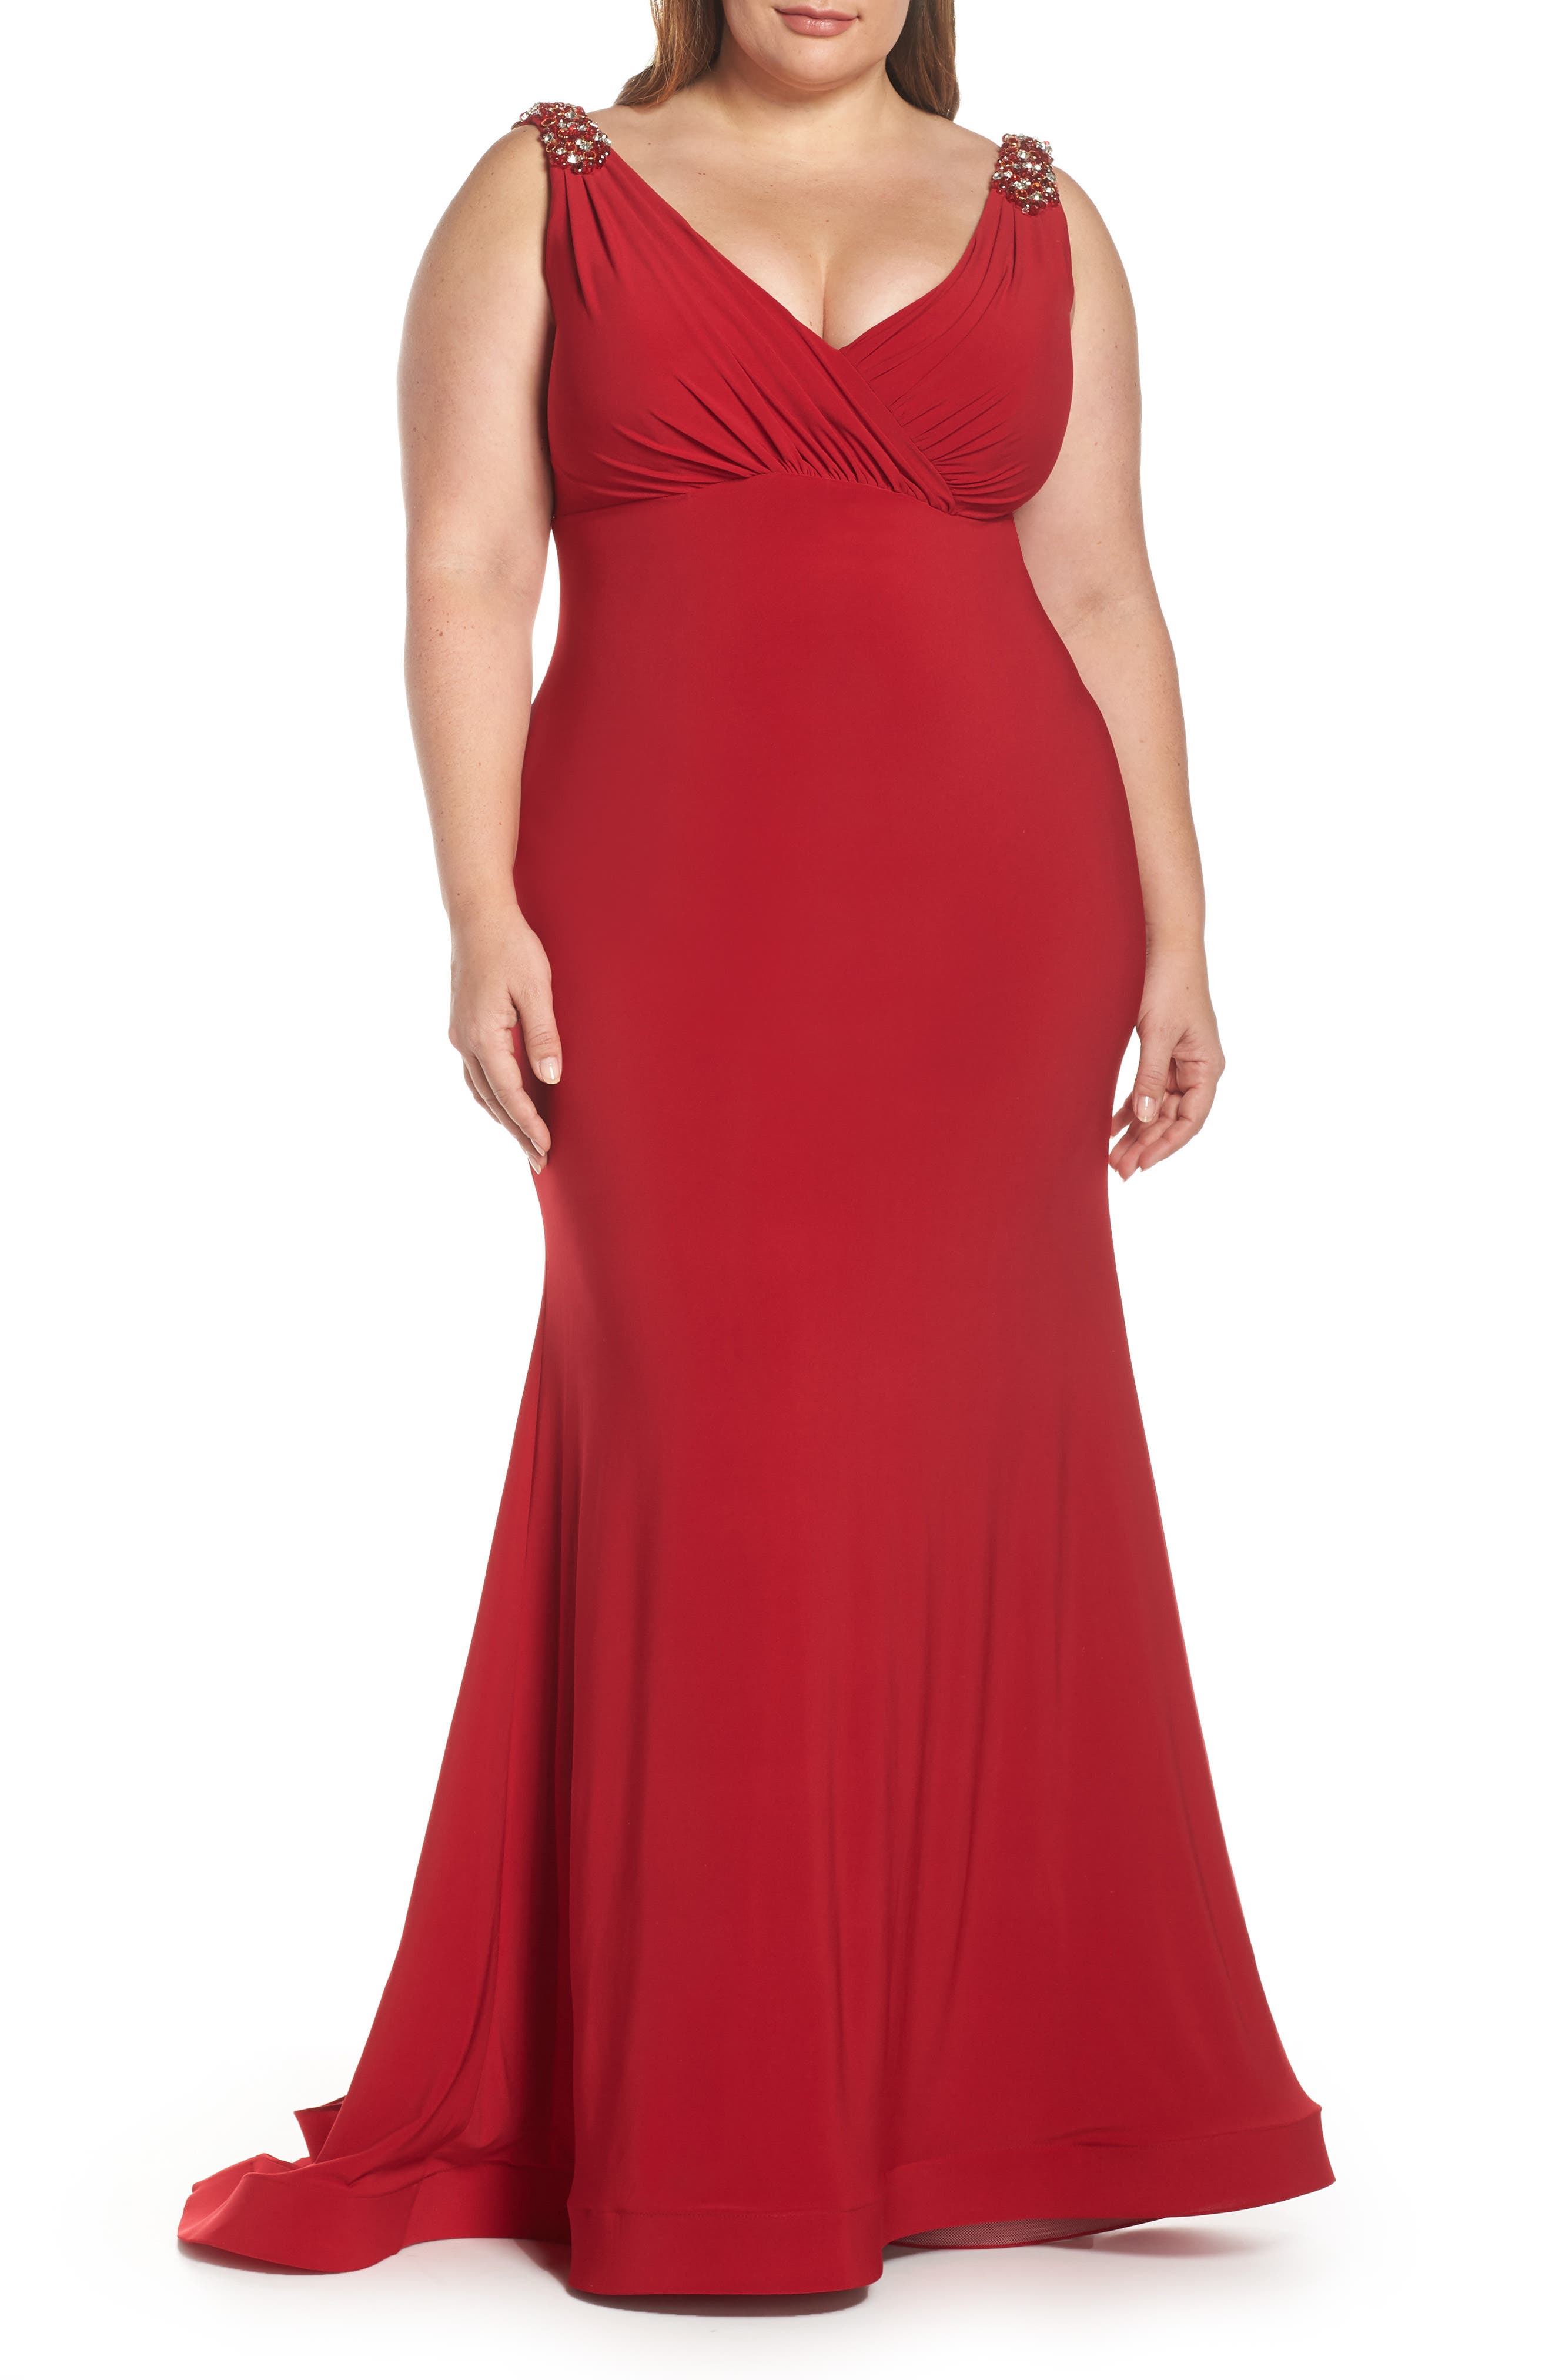 1930s Dresses | 30s Art Deco Dress Plus Size Womens MAC Duggal Embellished Trumpet Evening Dress Size 24W - Red $398.00 AT vintagedancer.com